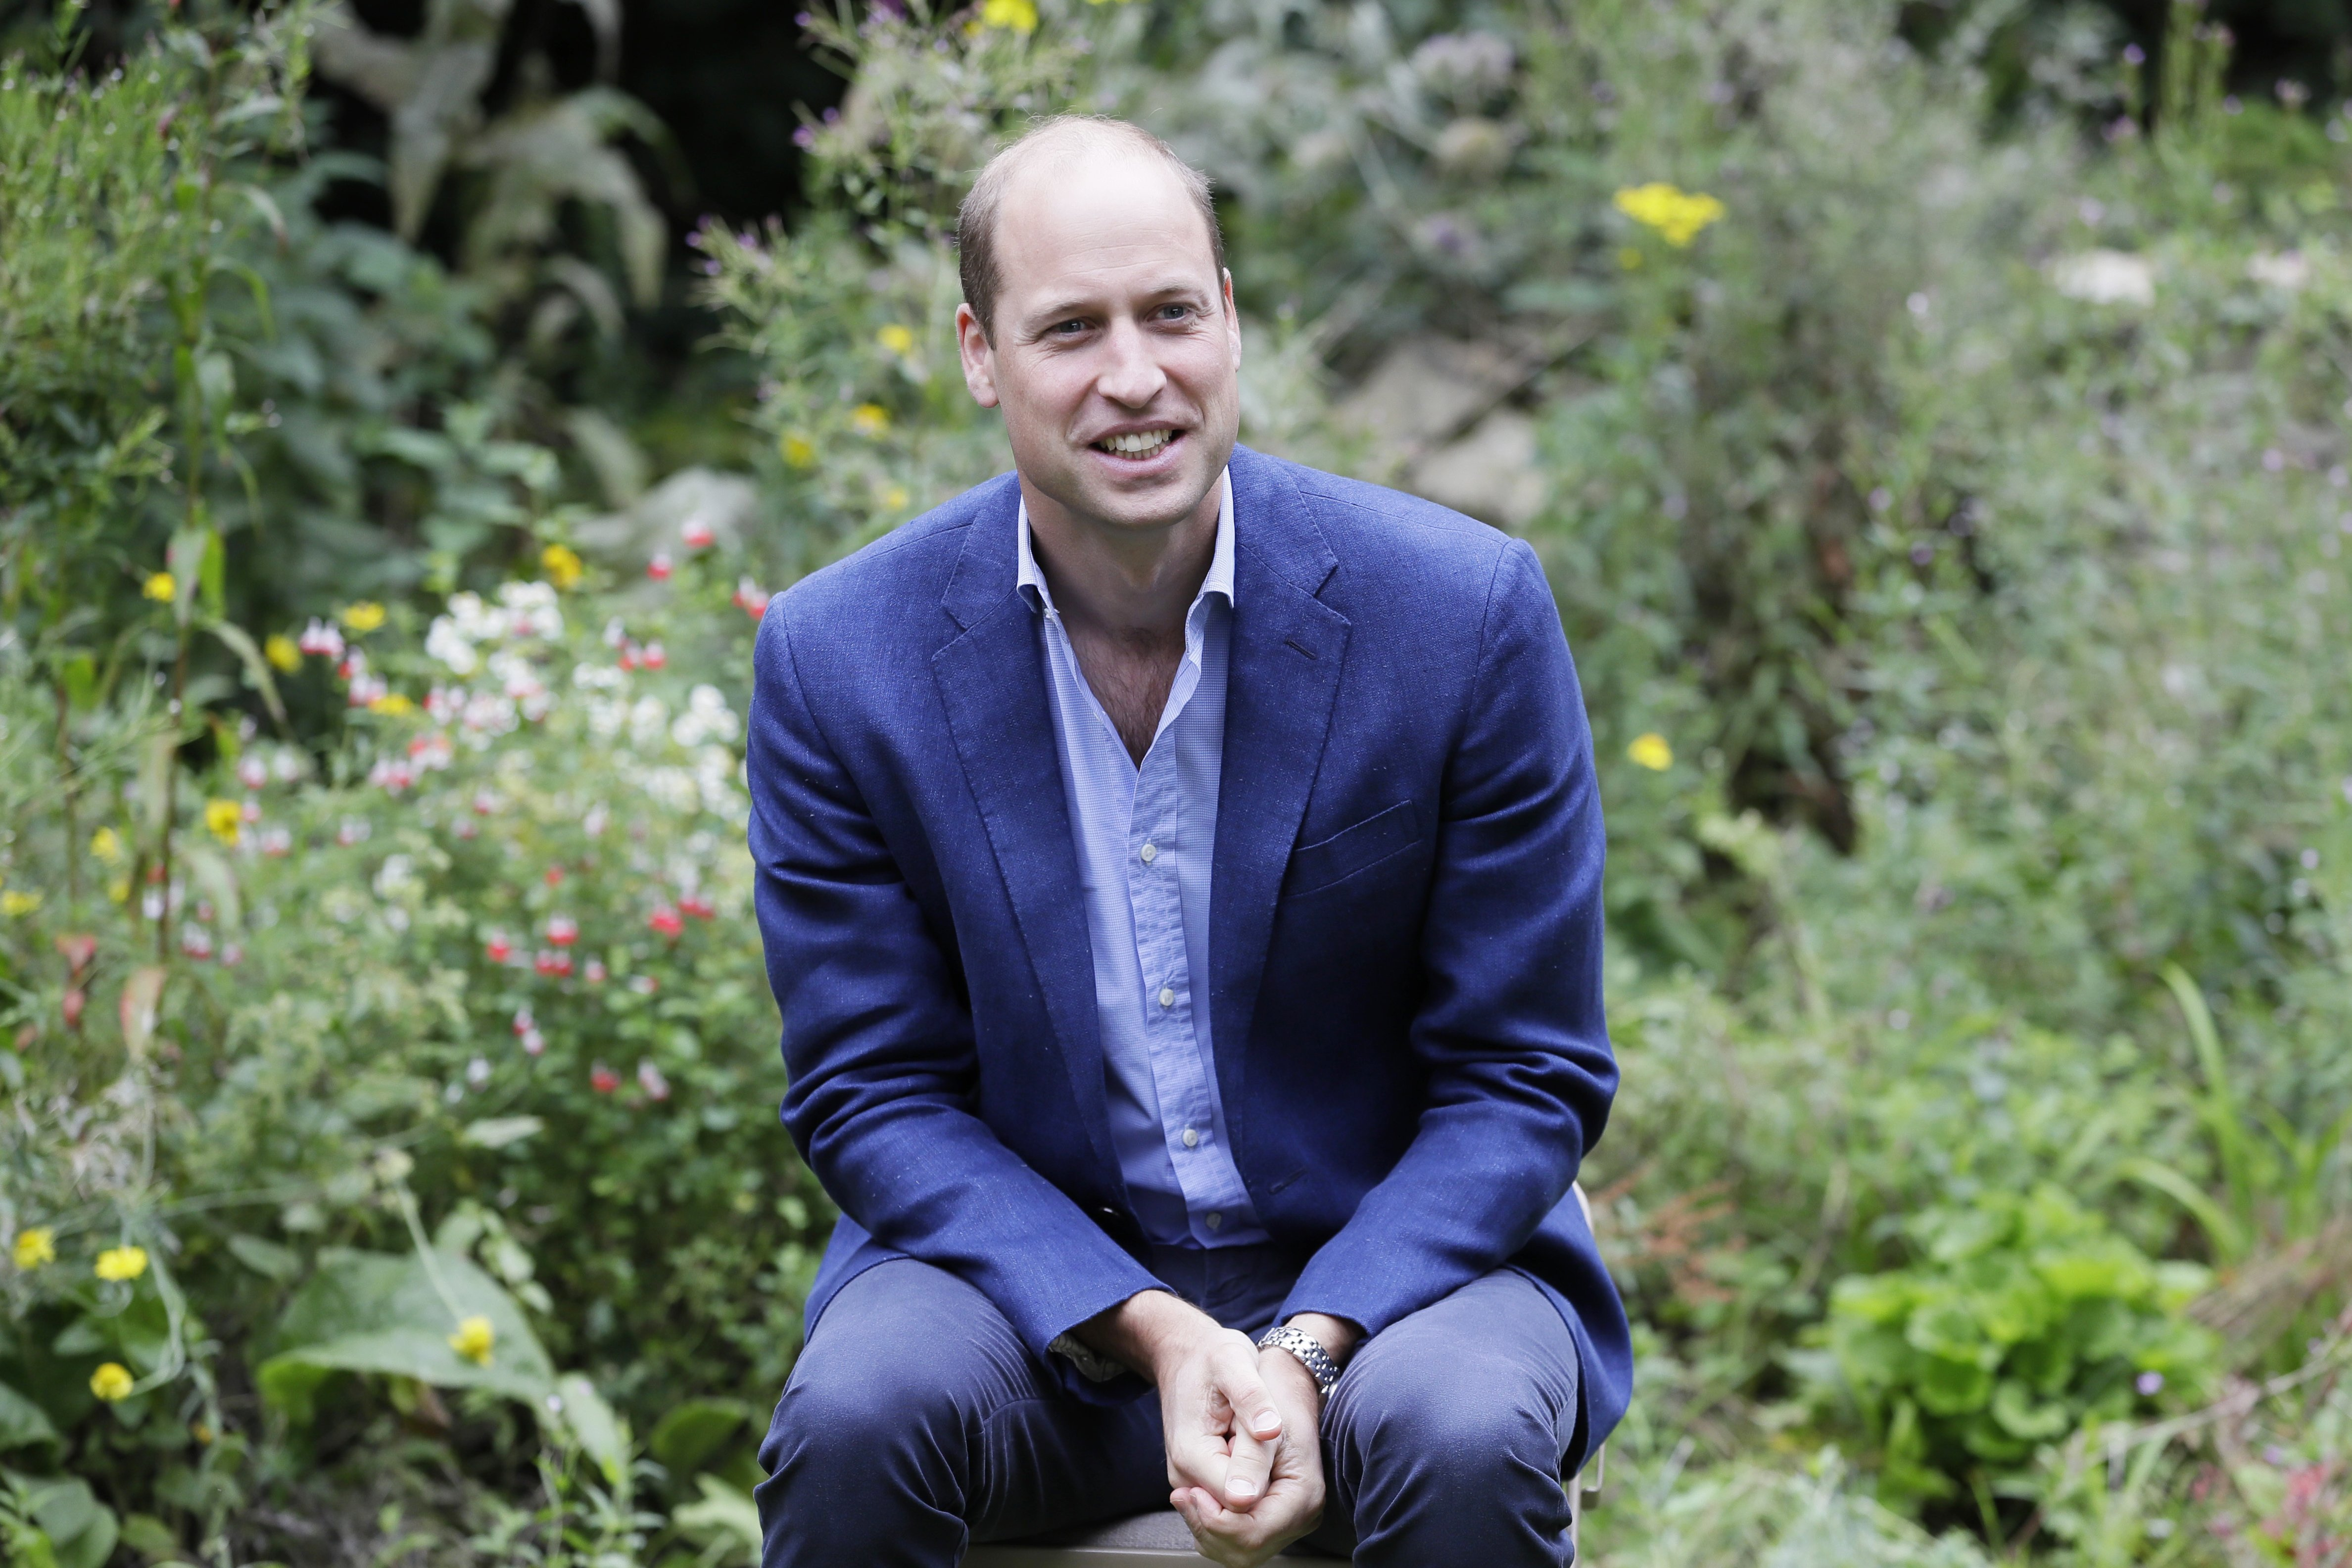 Prince William, Duke of Cambridge speaks with service users during a visit to the Garden House part of the Light Project on July 16, 2020 in Peterborough, England   Photo: Getty Images